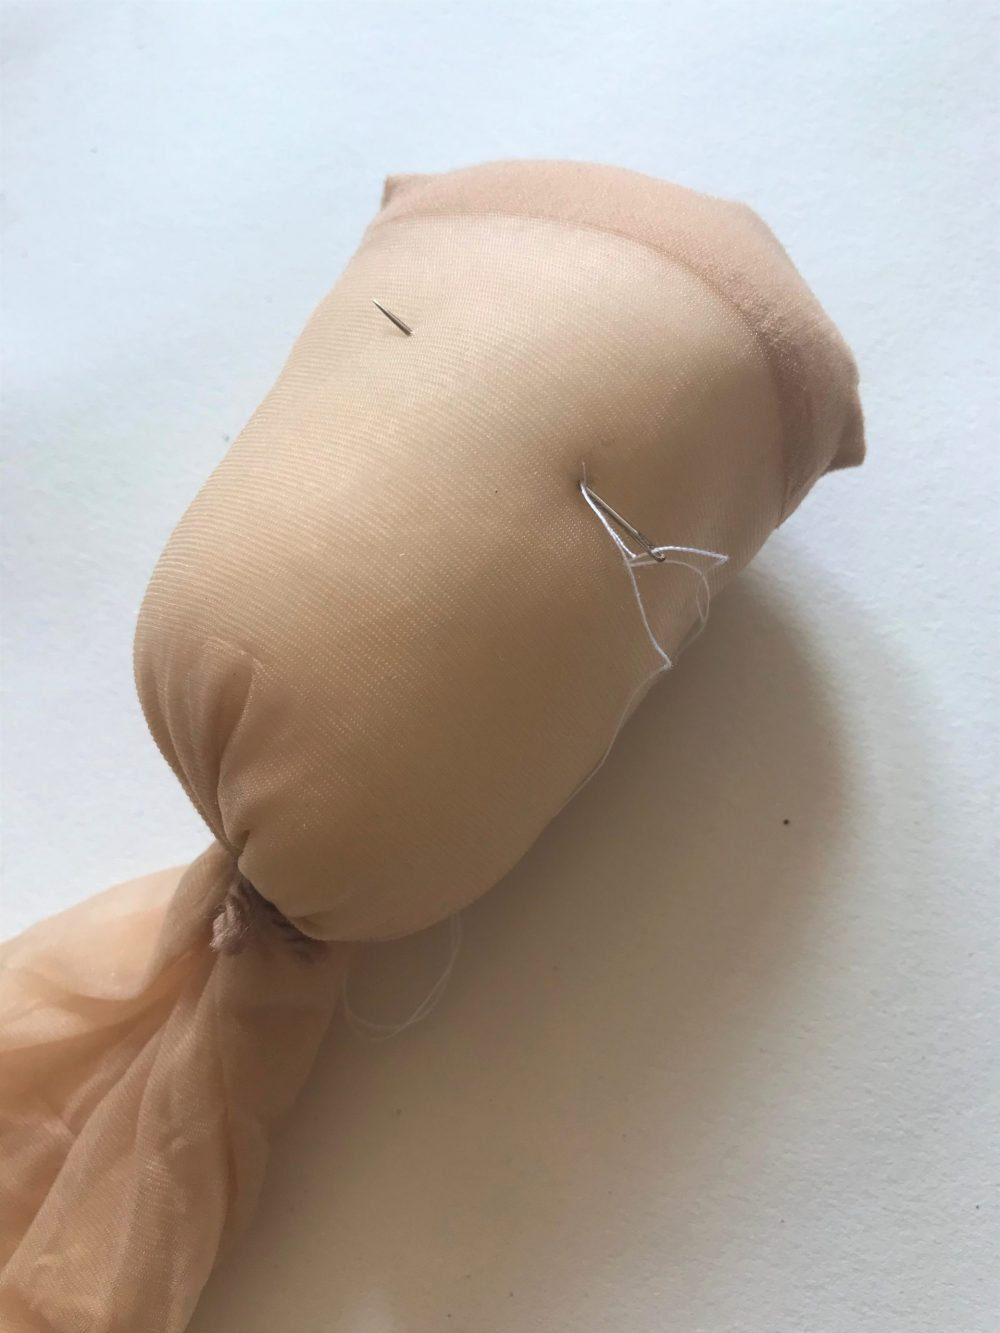 pushing a needle and thread through the stuffed head